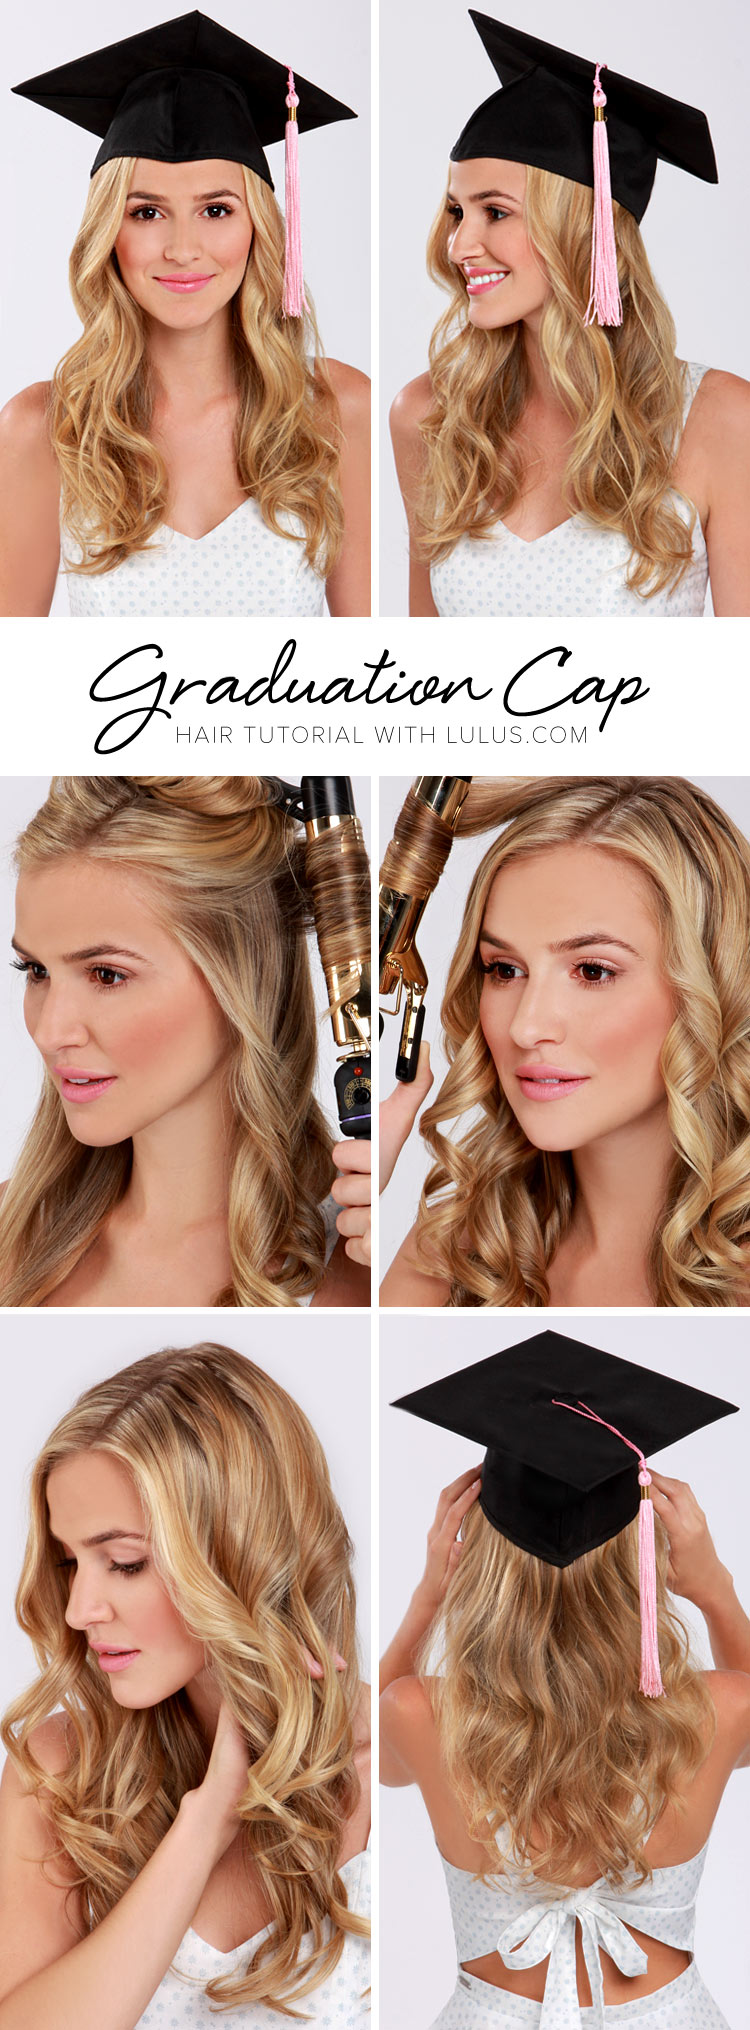 GradCapHair